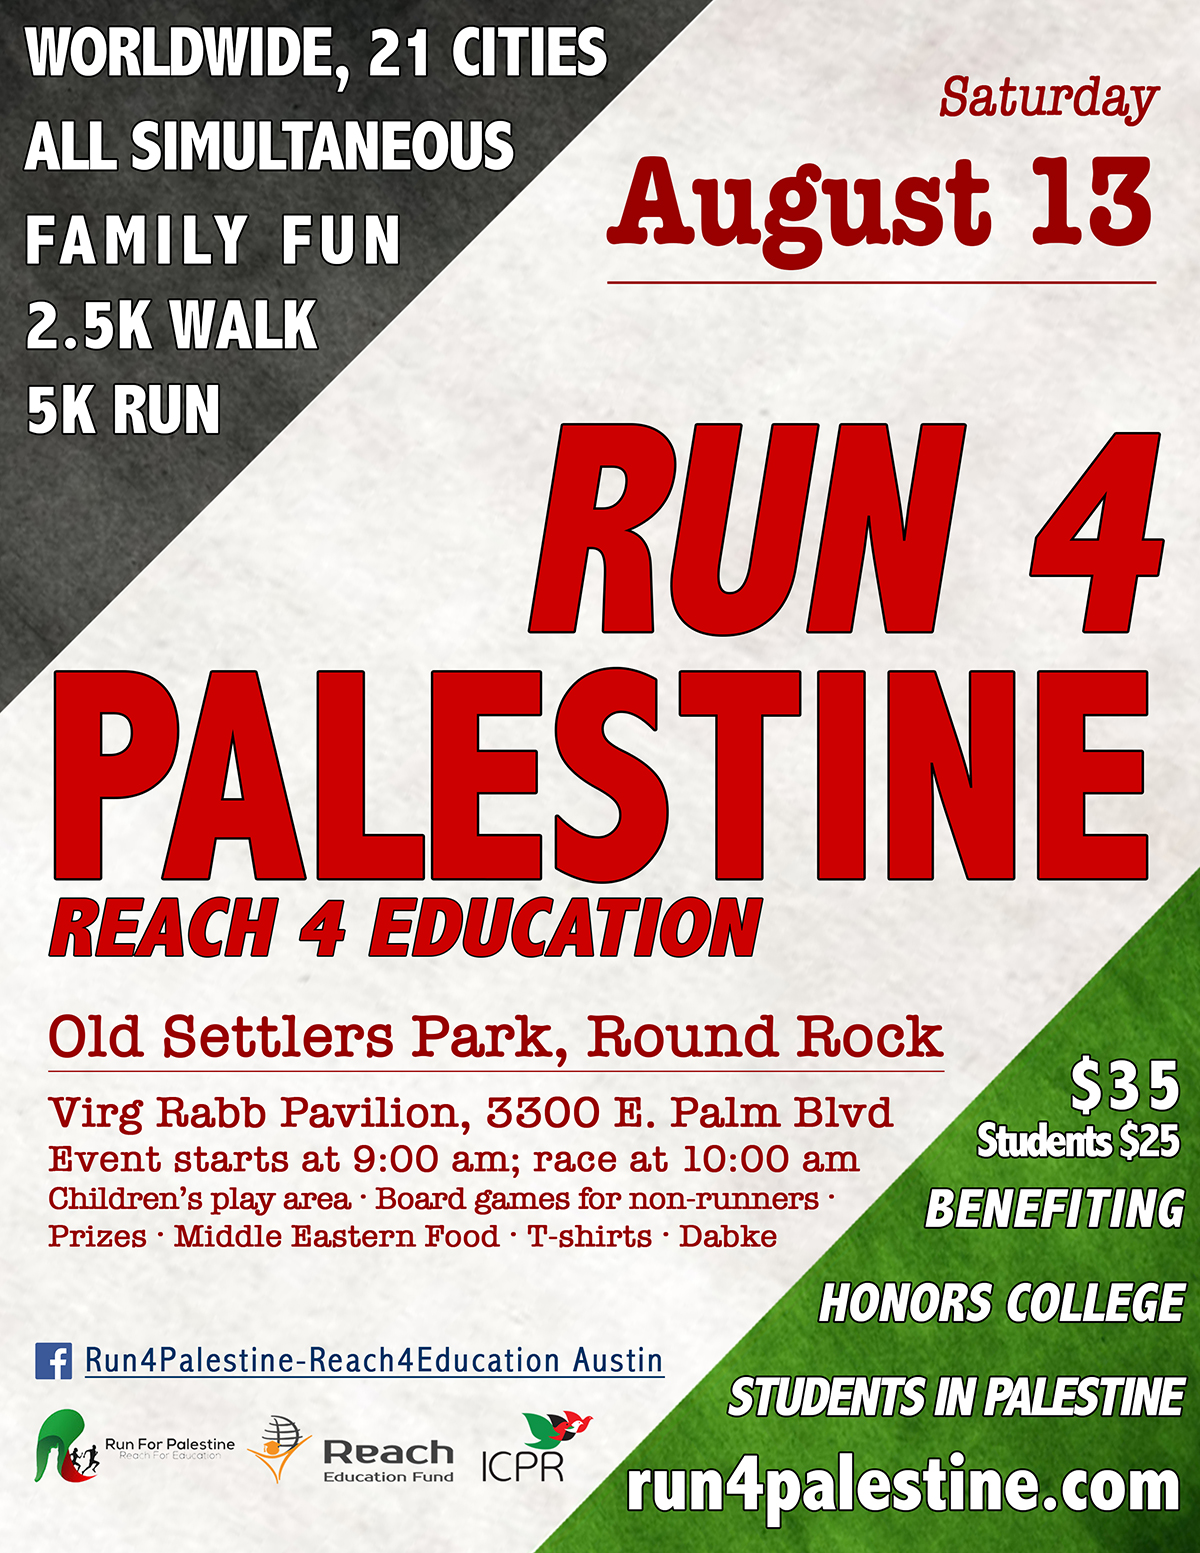 Run 4 Palestine will take place August 13, 2016 at Old Settlers Park._328498